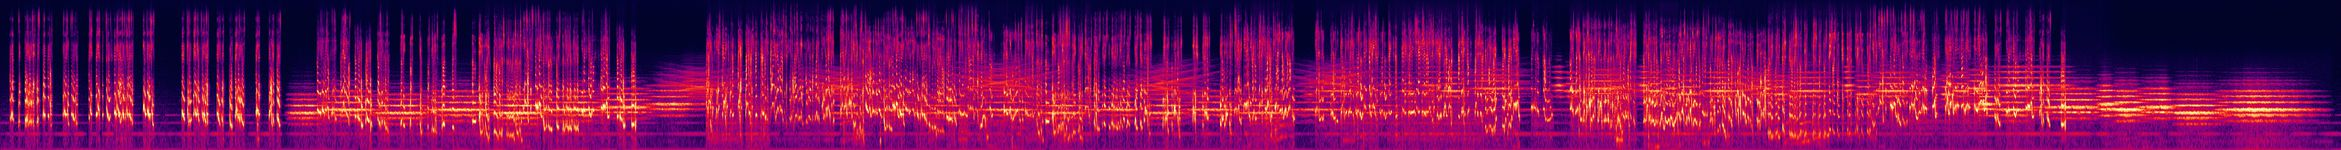 Amor Dei - 1. Groping towards God - Spectrogram.jpg